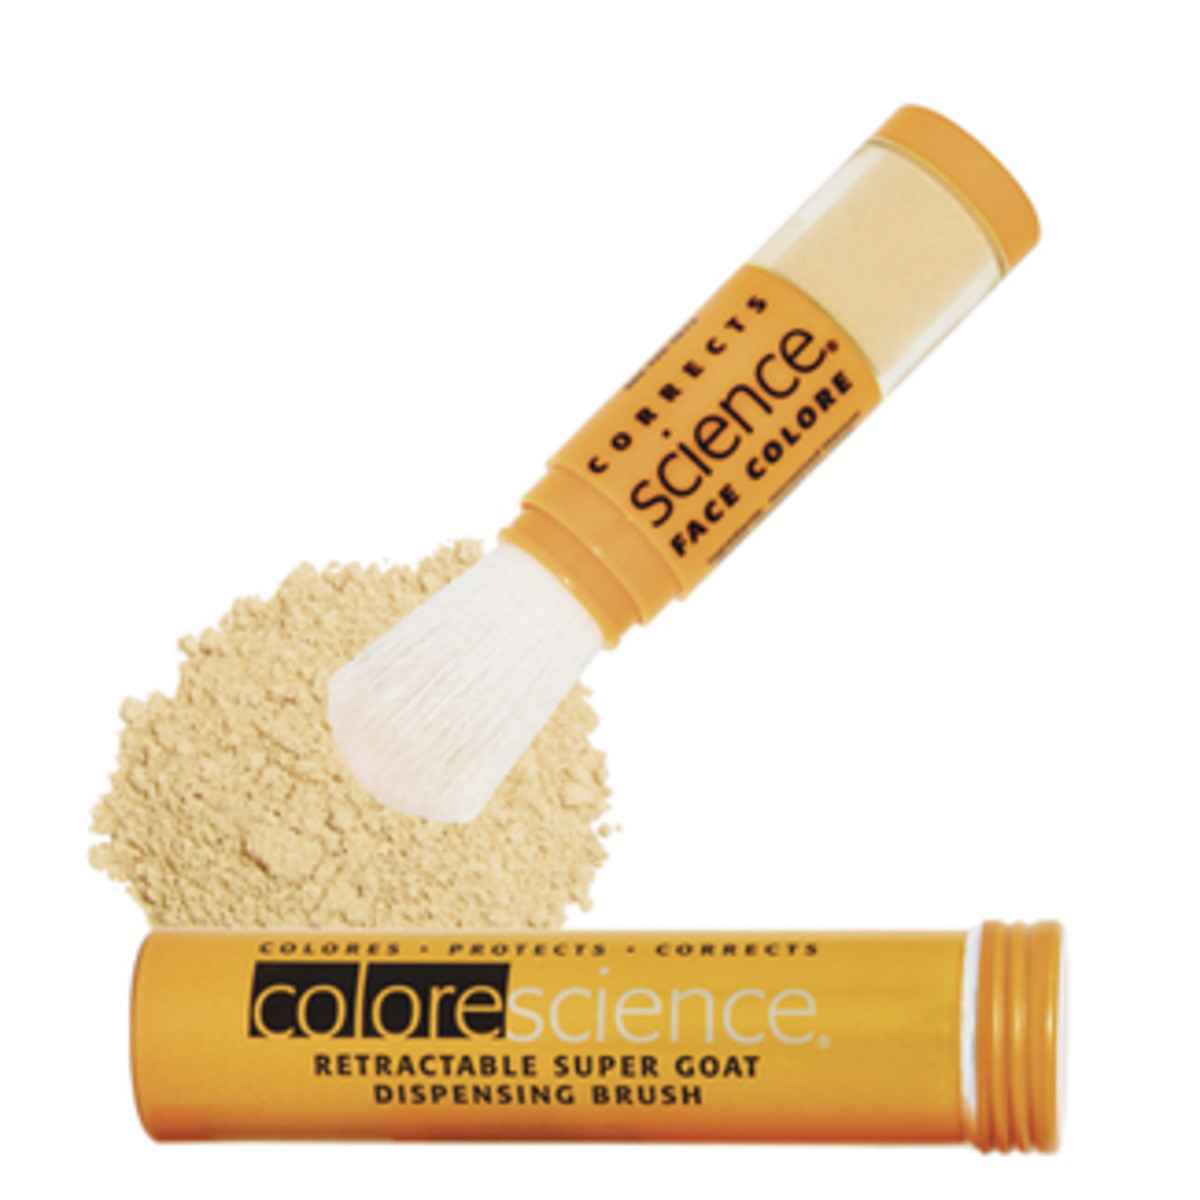 colorescience_foundation_brush